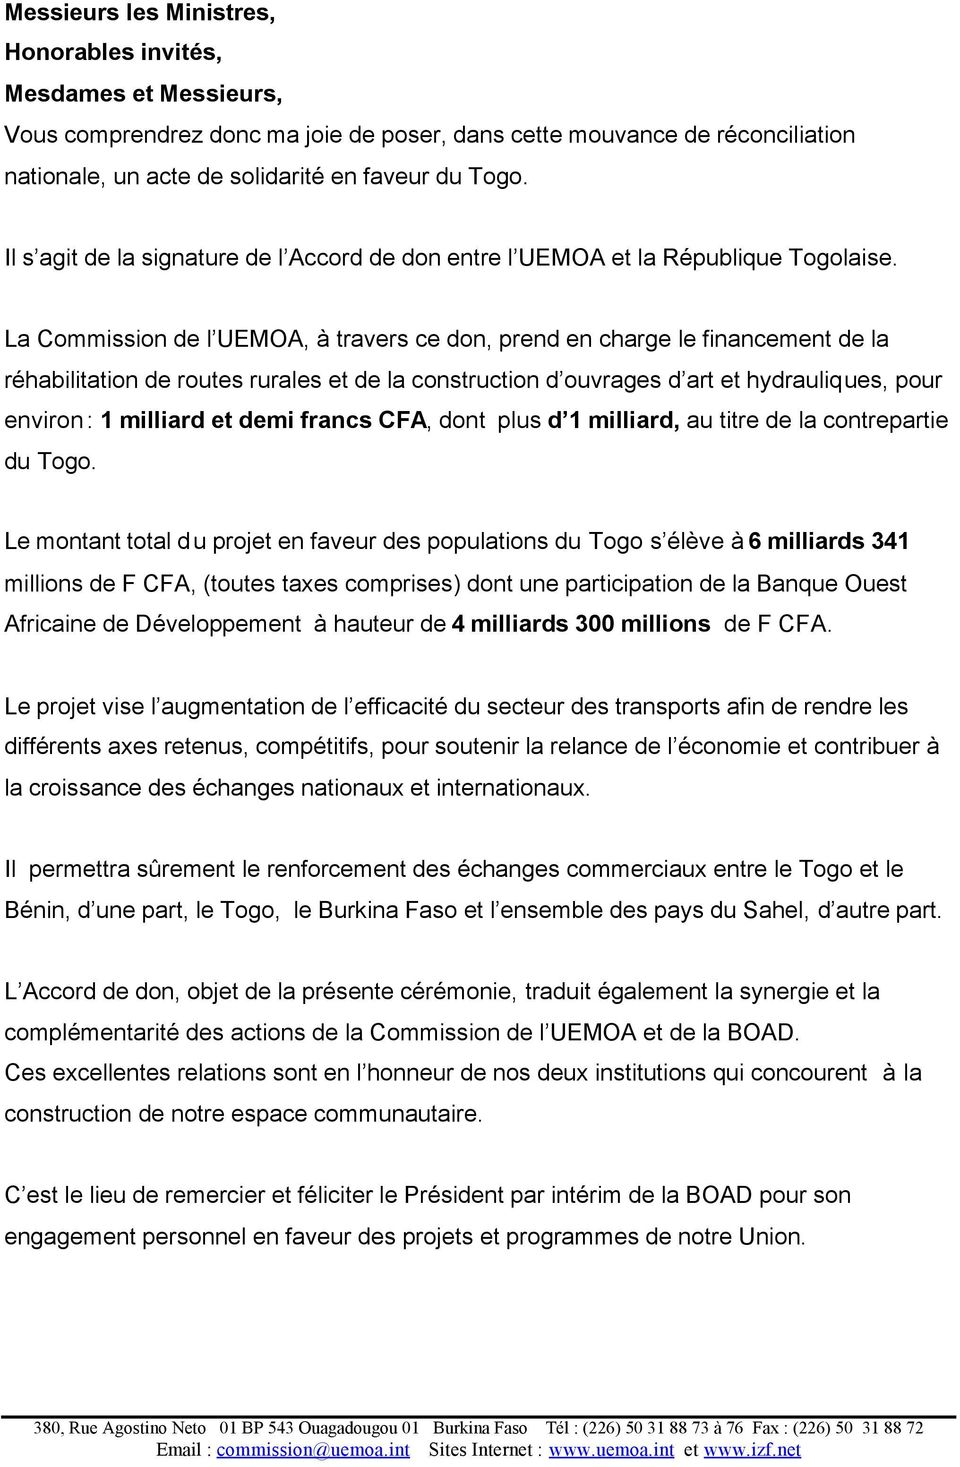 La Commission de l UEMOA, à travers ce don, prend en charge le financement de la réhabilitation de routes rurales et de la construction d ouvrages d art et hydrauliques, pour environ : 1 milliard et